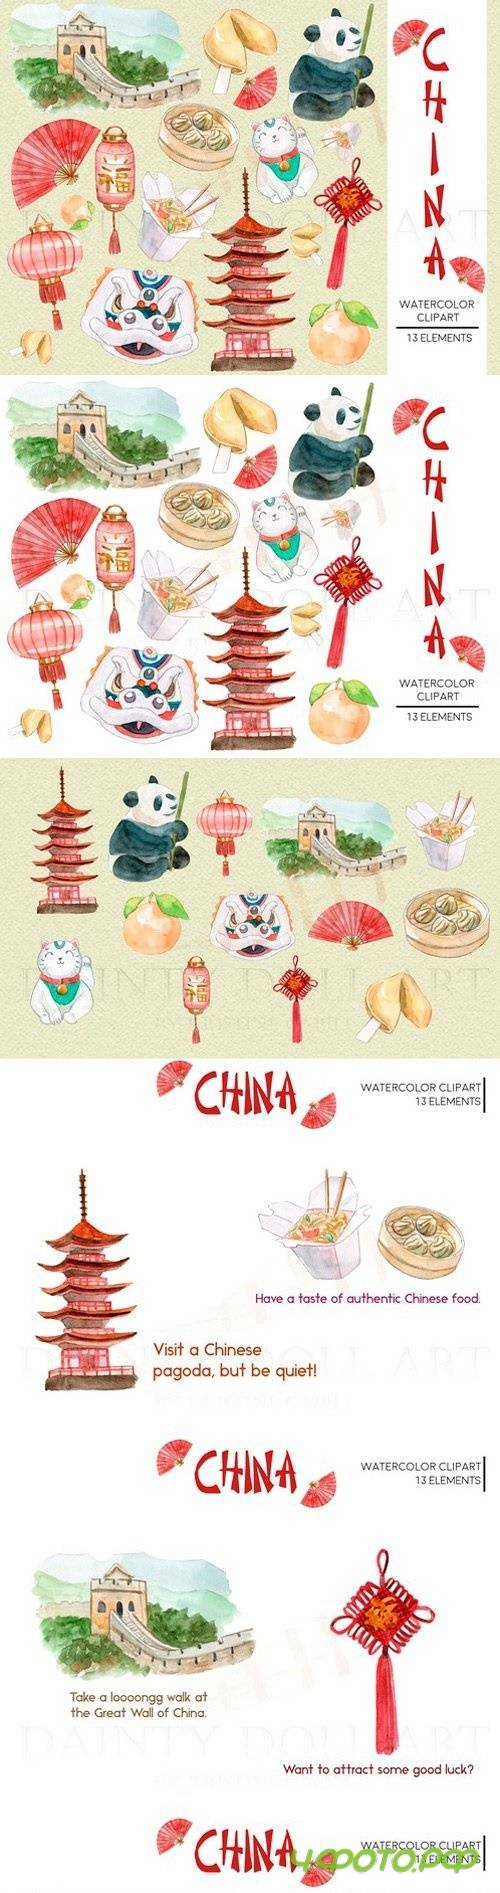 China Clipart Watercolor - 1998018